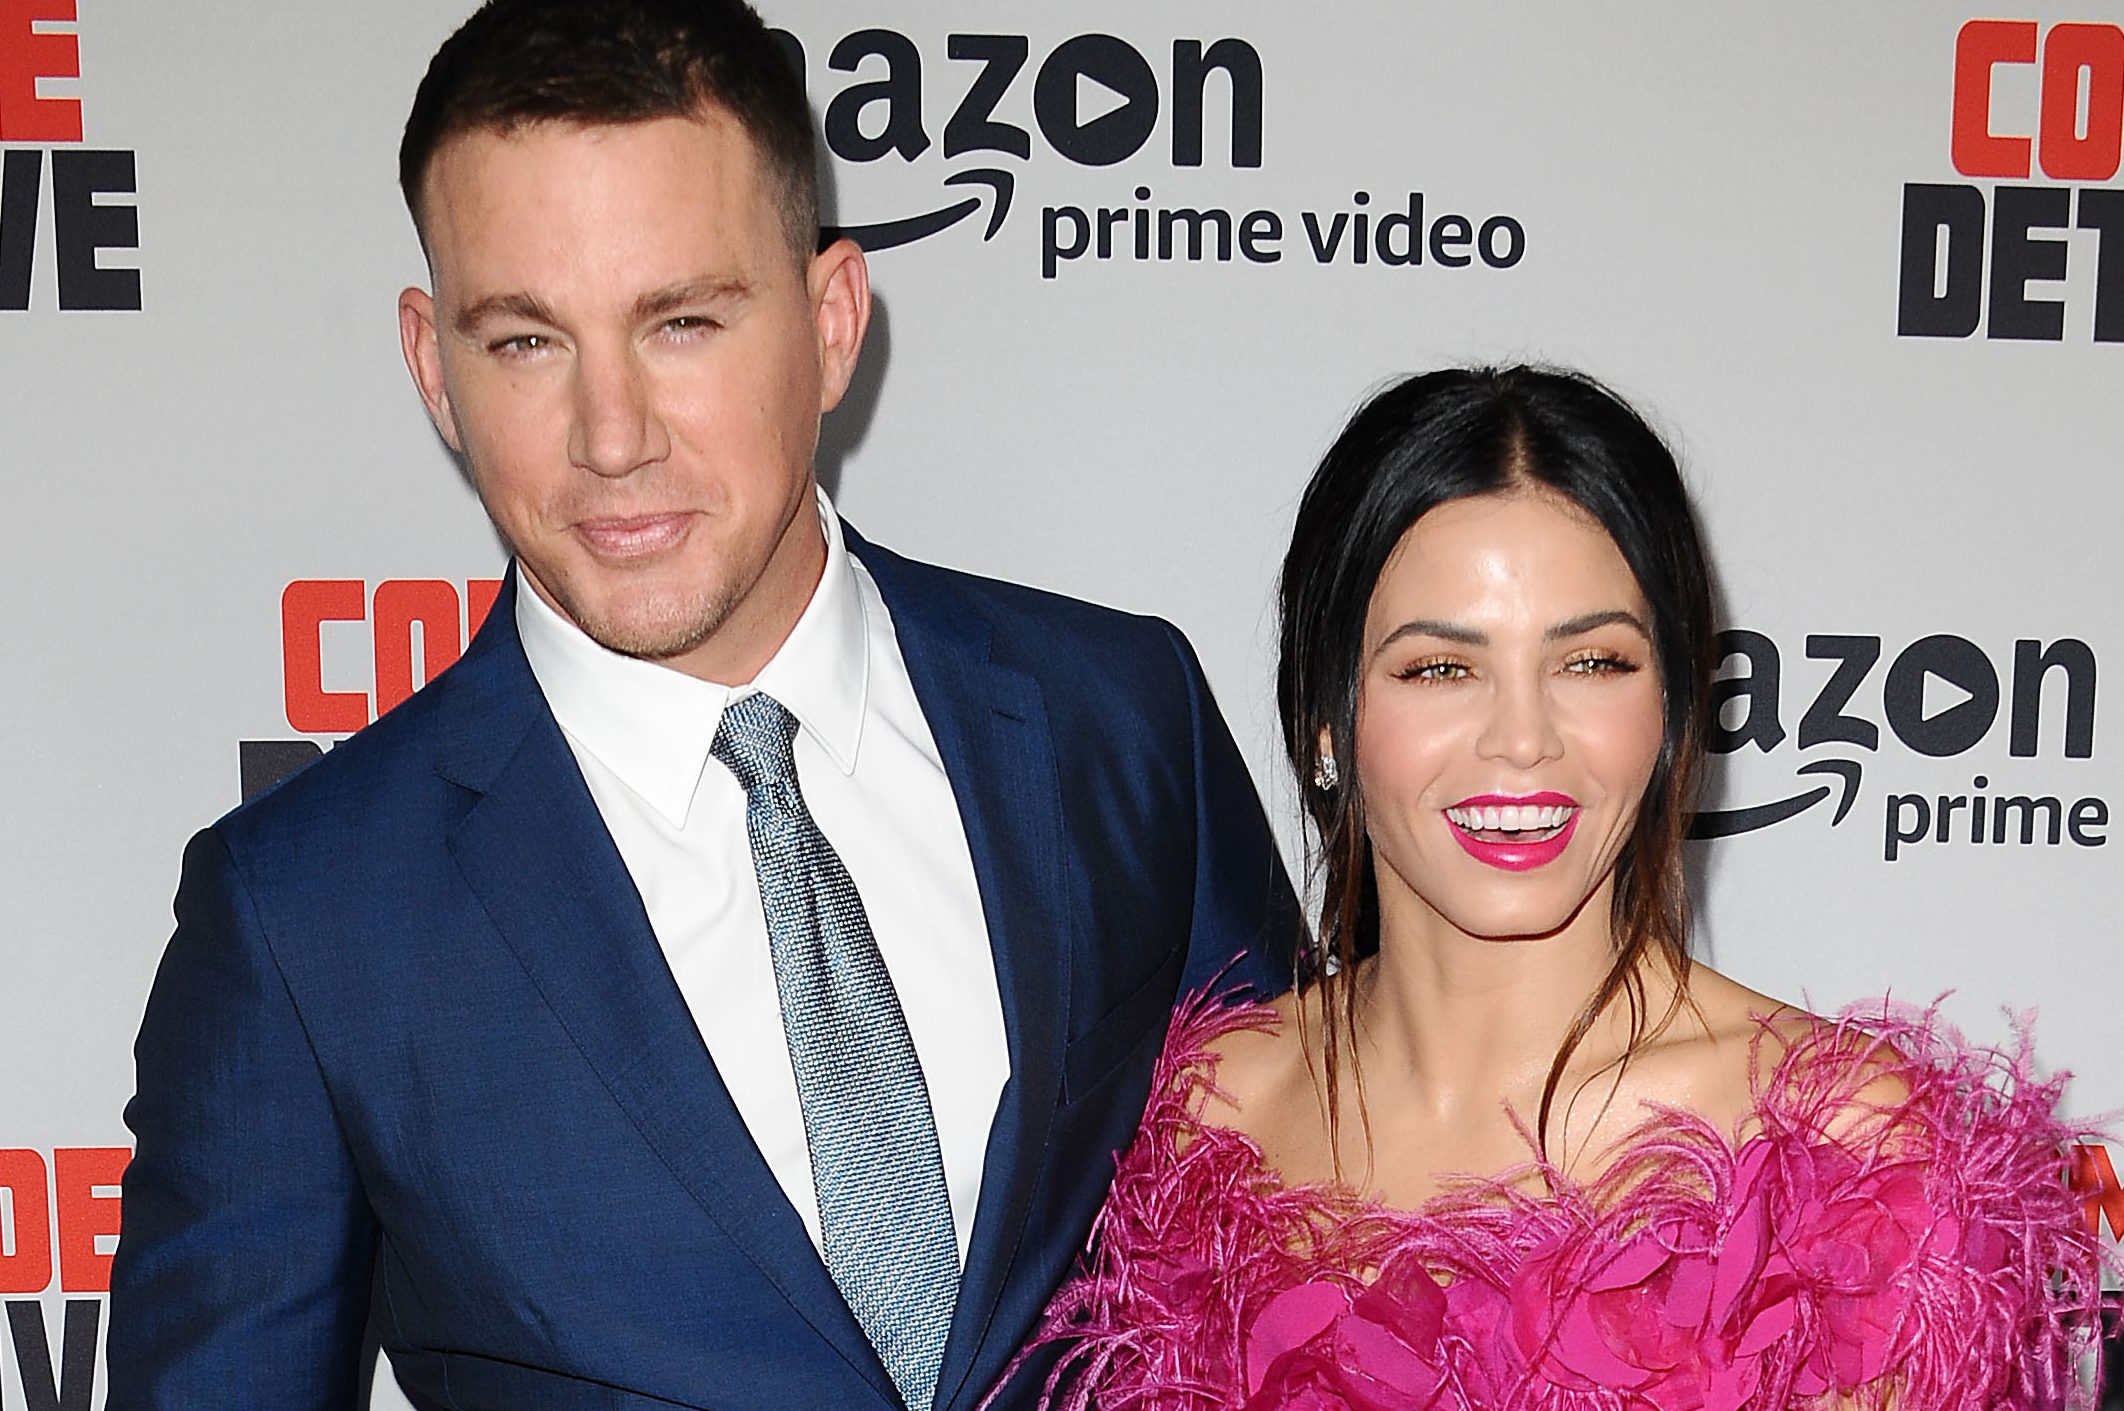 Channing Tatum and ex Jenna Dewan reunite to take daughter trick or treating and it's seriously heartwarming